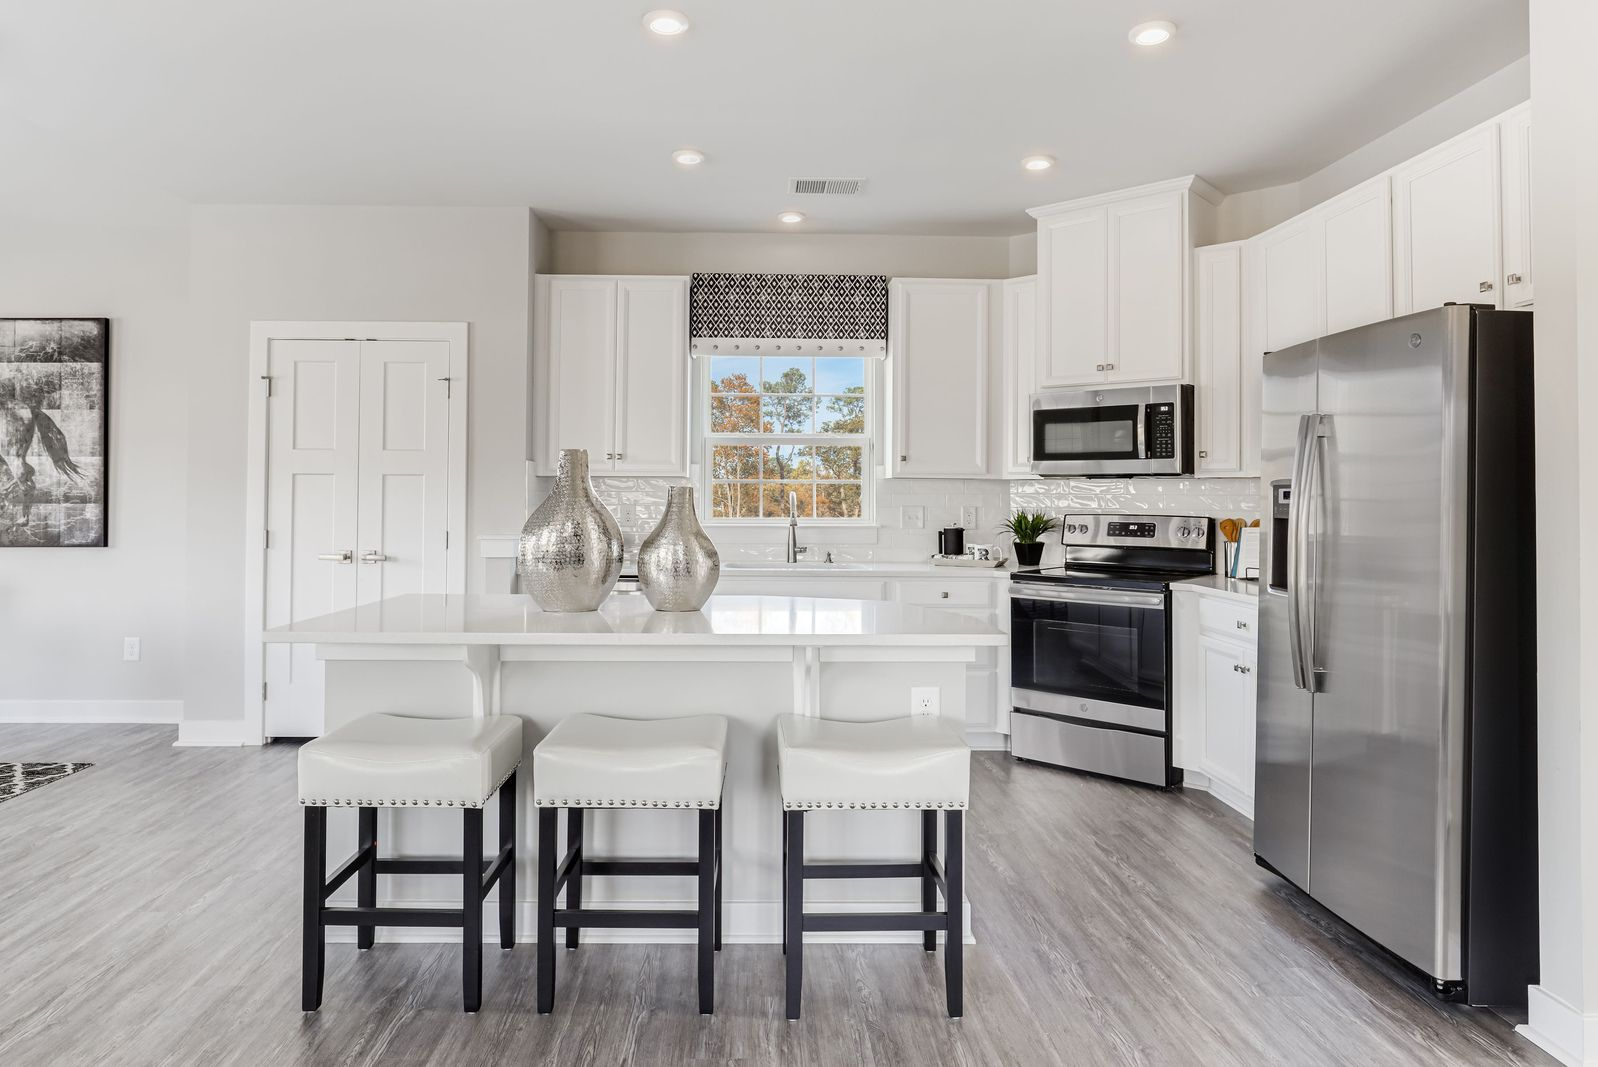 Kitchen featured in the Robert Frost By Ryan Homes in Charleston, SC